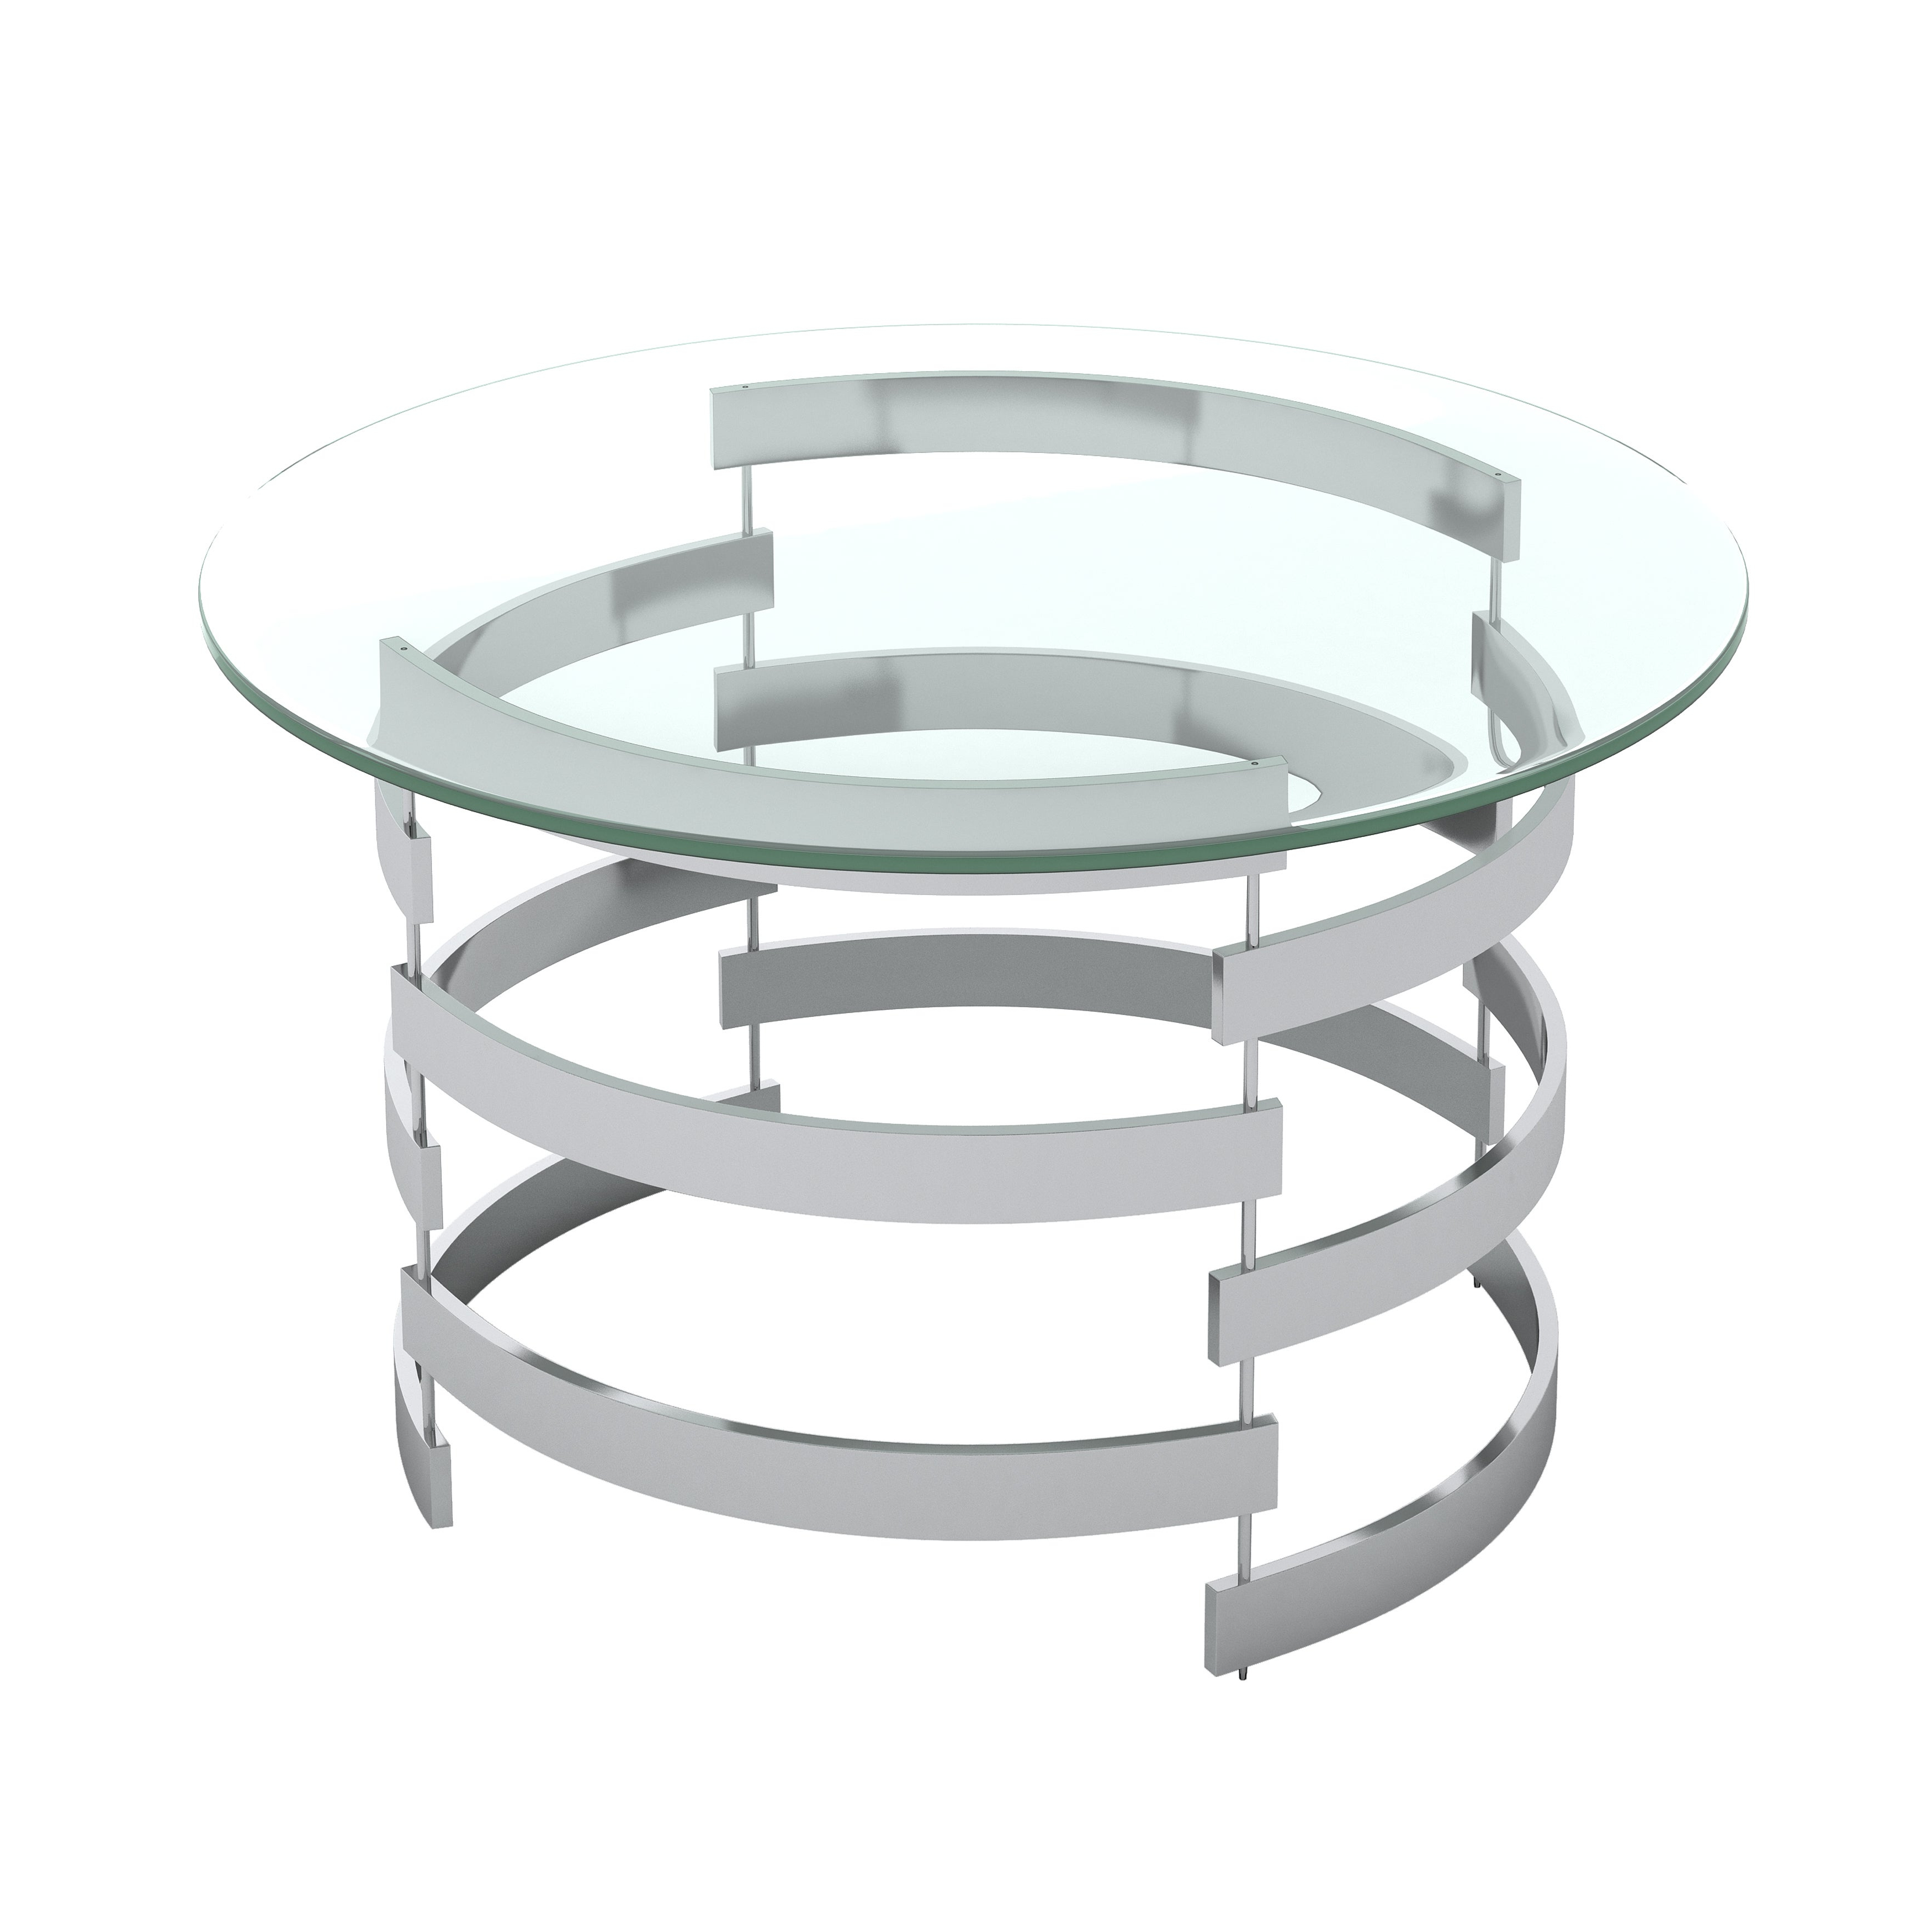 Newest Silver Orchid Bardeen Round Coffee Tables Pertaining To Silver Orchid Bardeen Round Coffee Table (View 2 of 20)